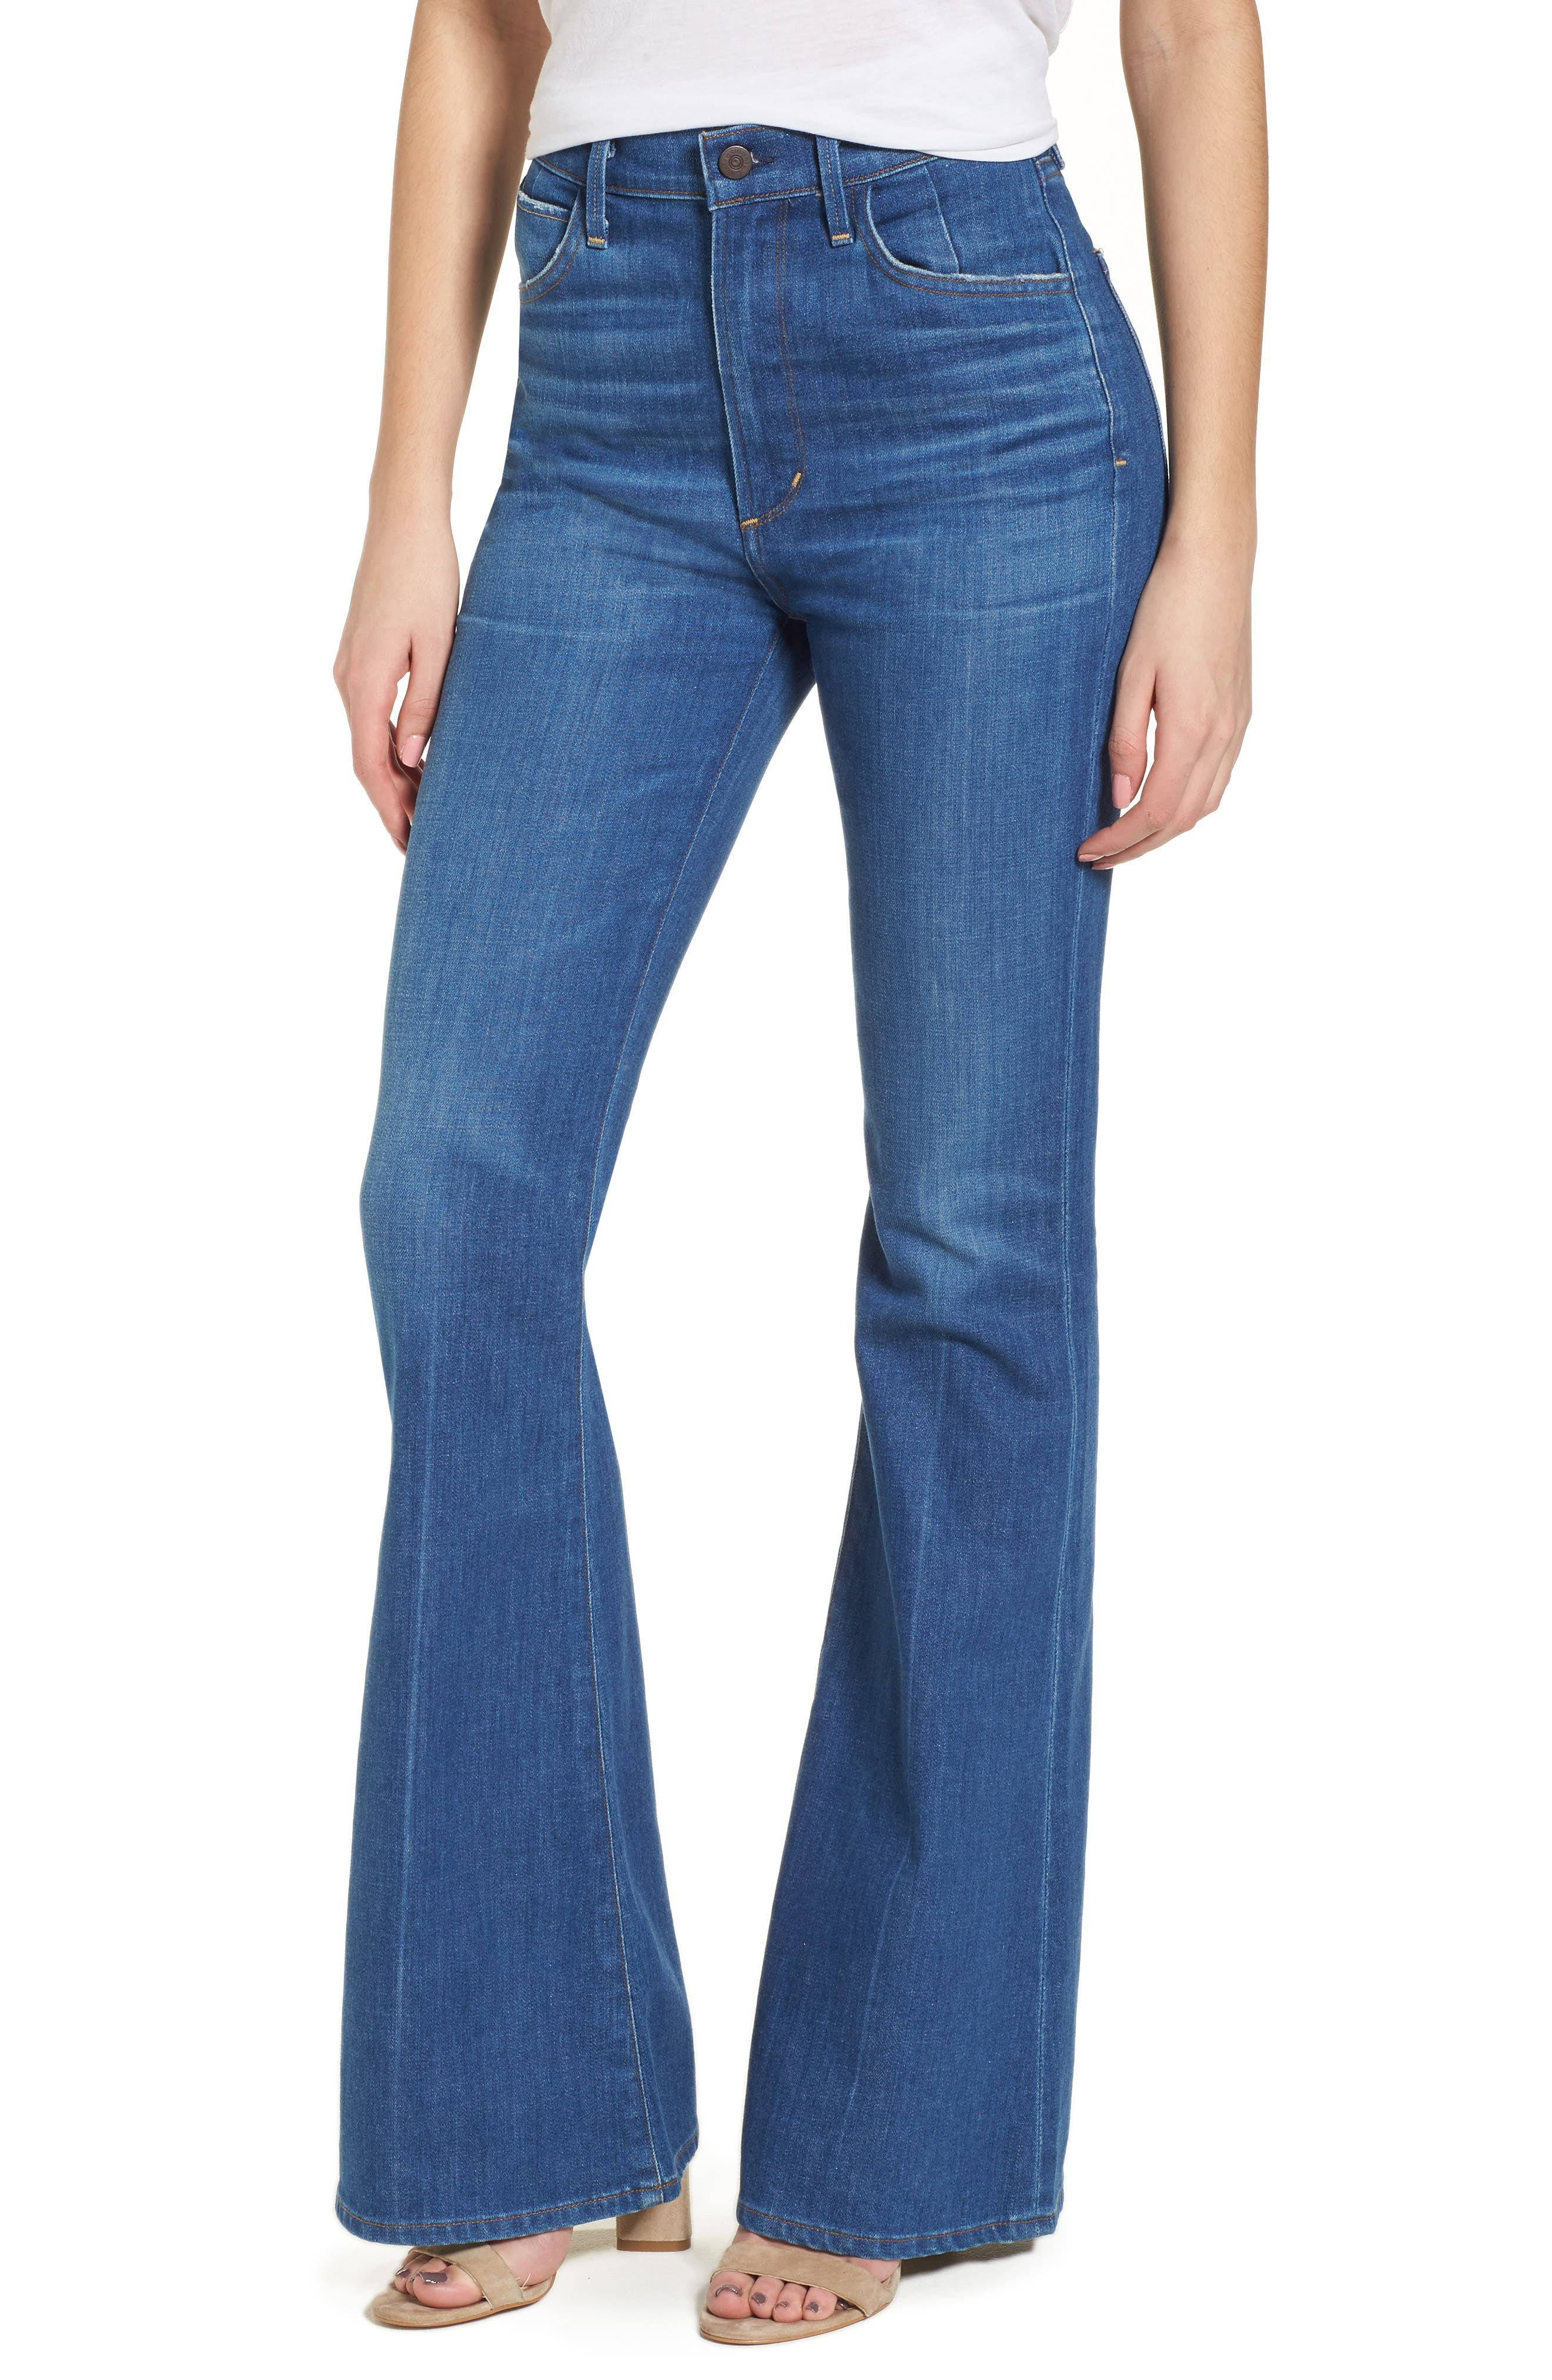 Cherie High Waist Bell Jeans,                             Main thumbnail 1, color,                             Frampton